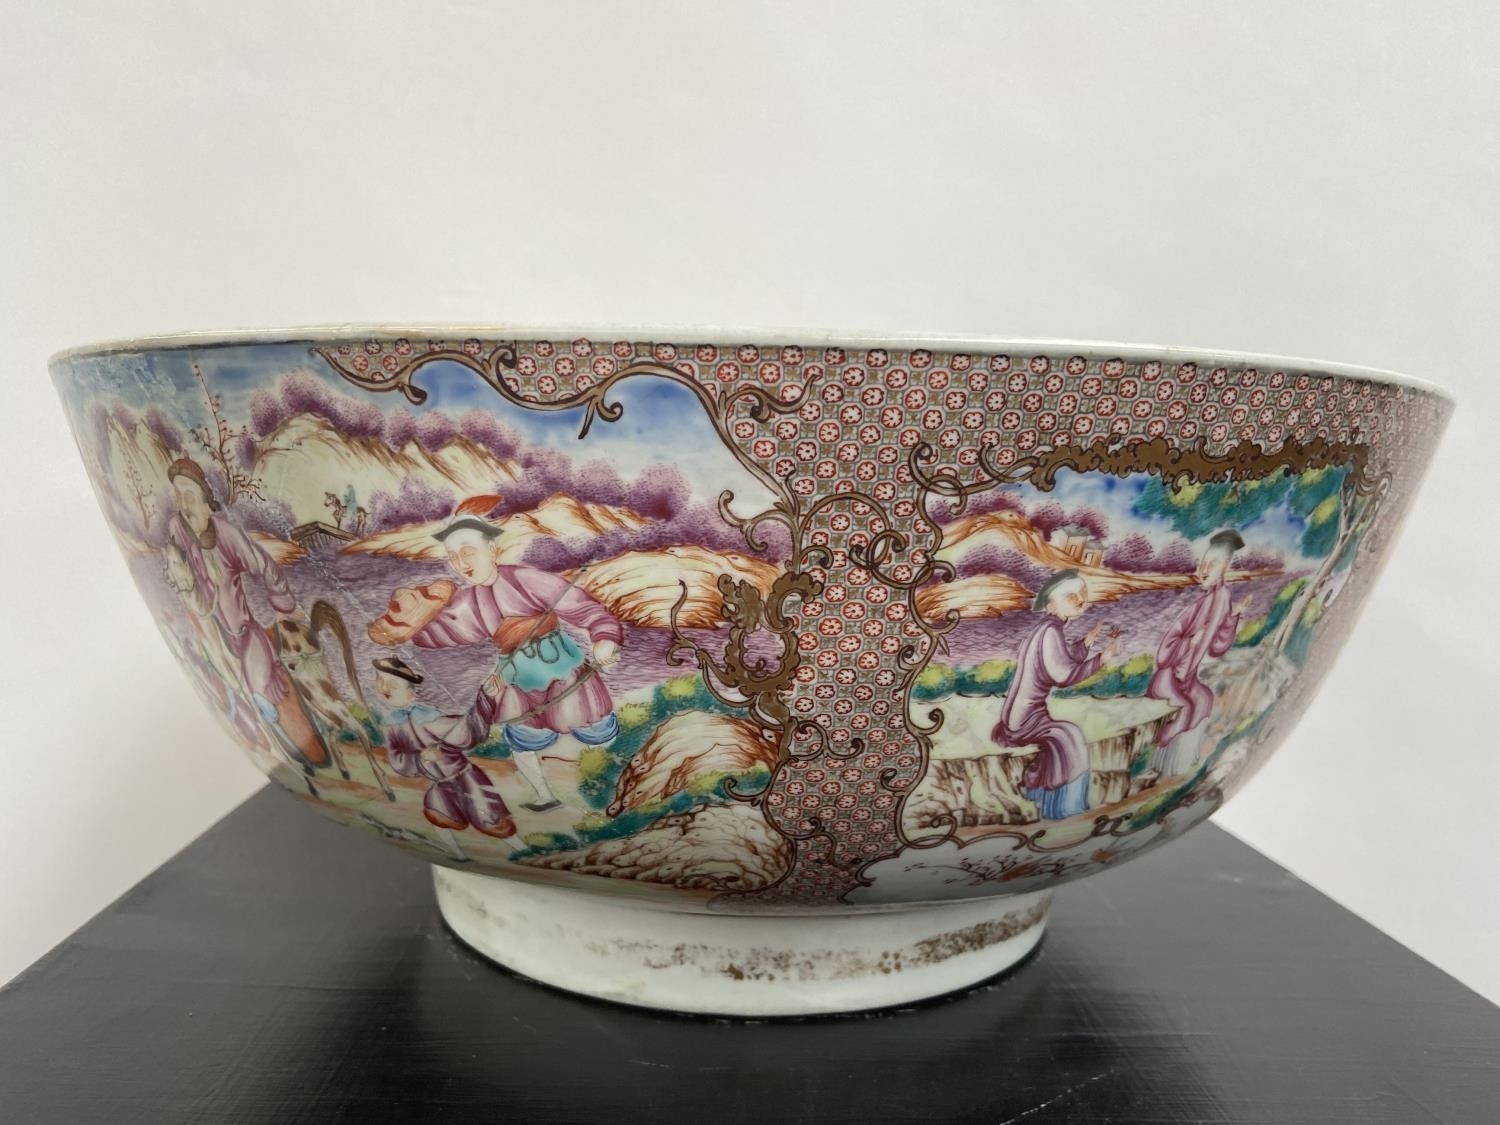 A LARGE 19TH CENTURY CHINESE HAND PAINTED BOWL. EXTERIOR DEPICTS CHINESE HUNTING SCENE PANELS. THE - Image 28 of 39